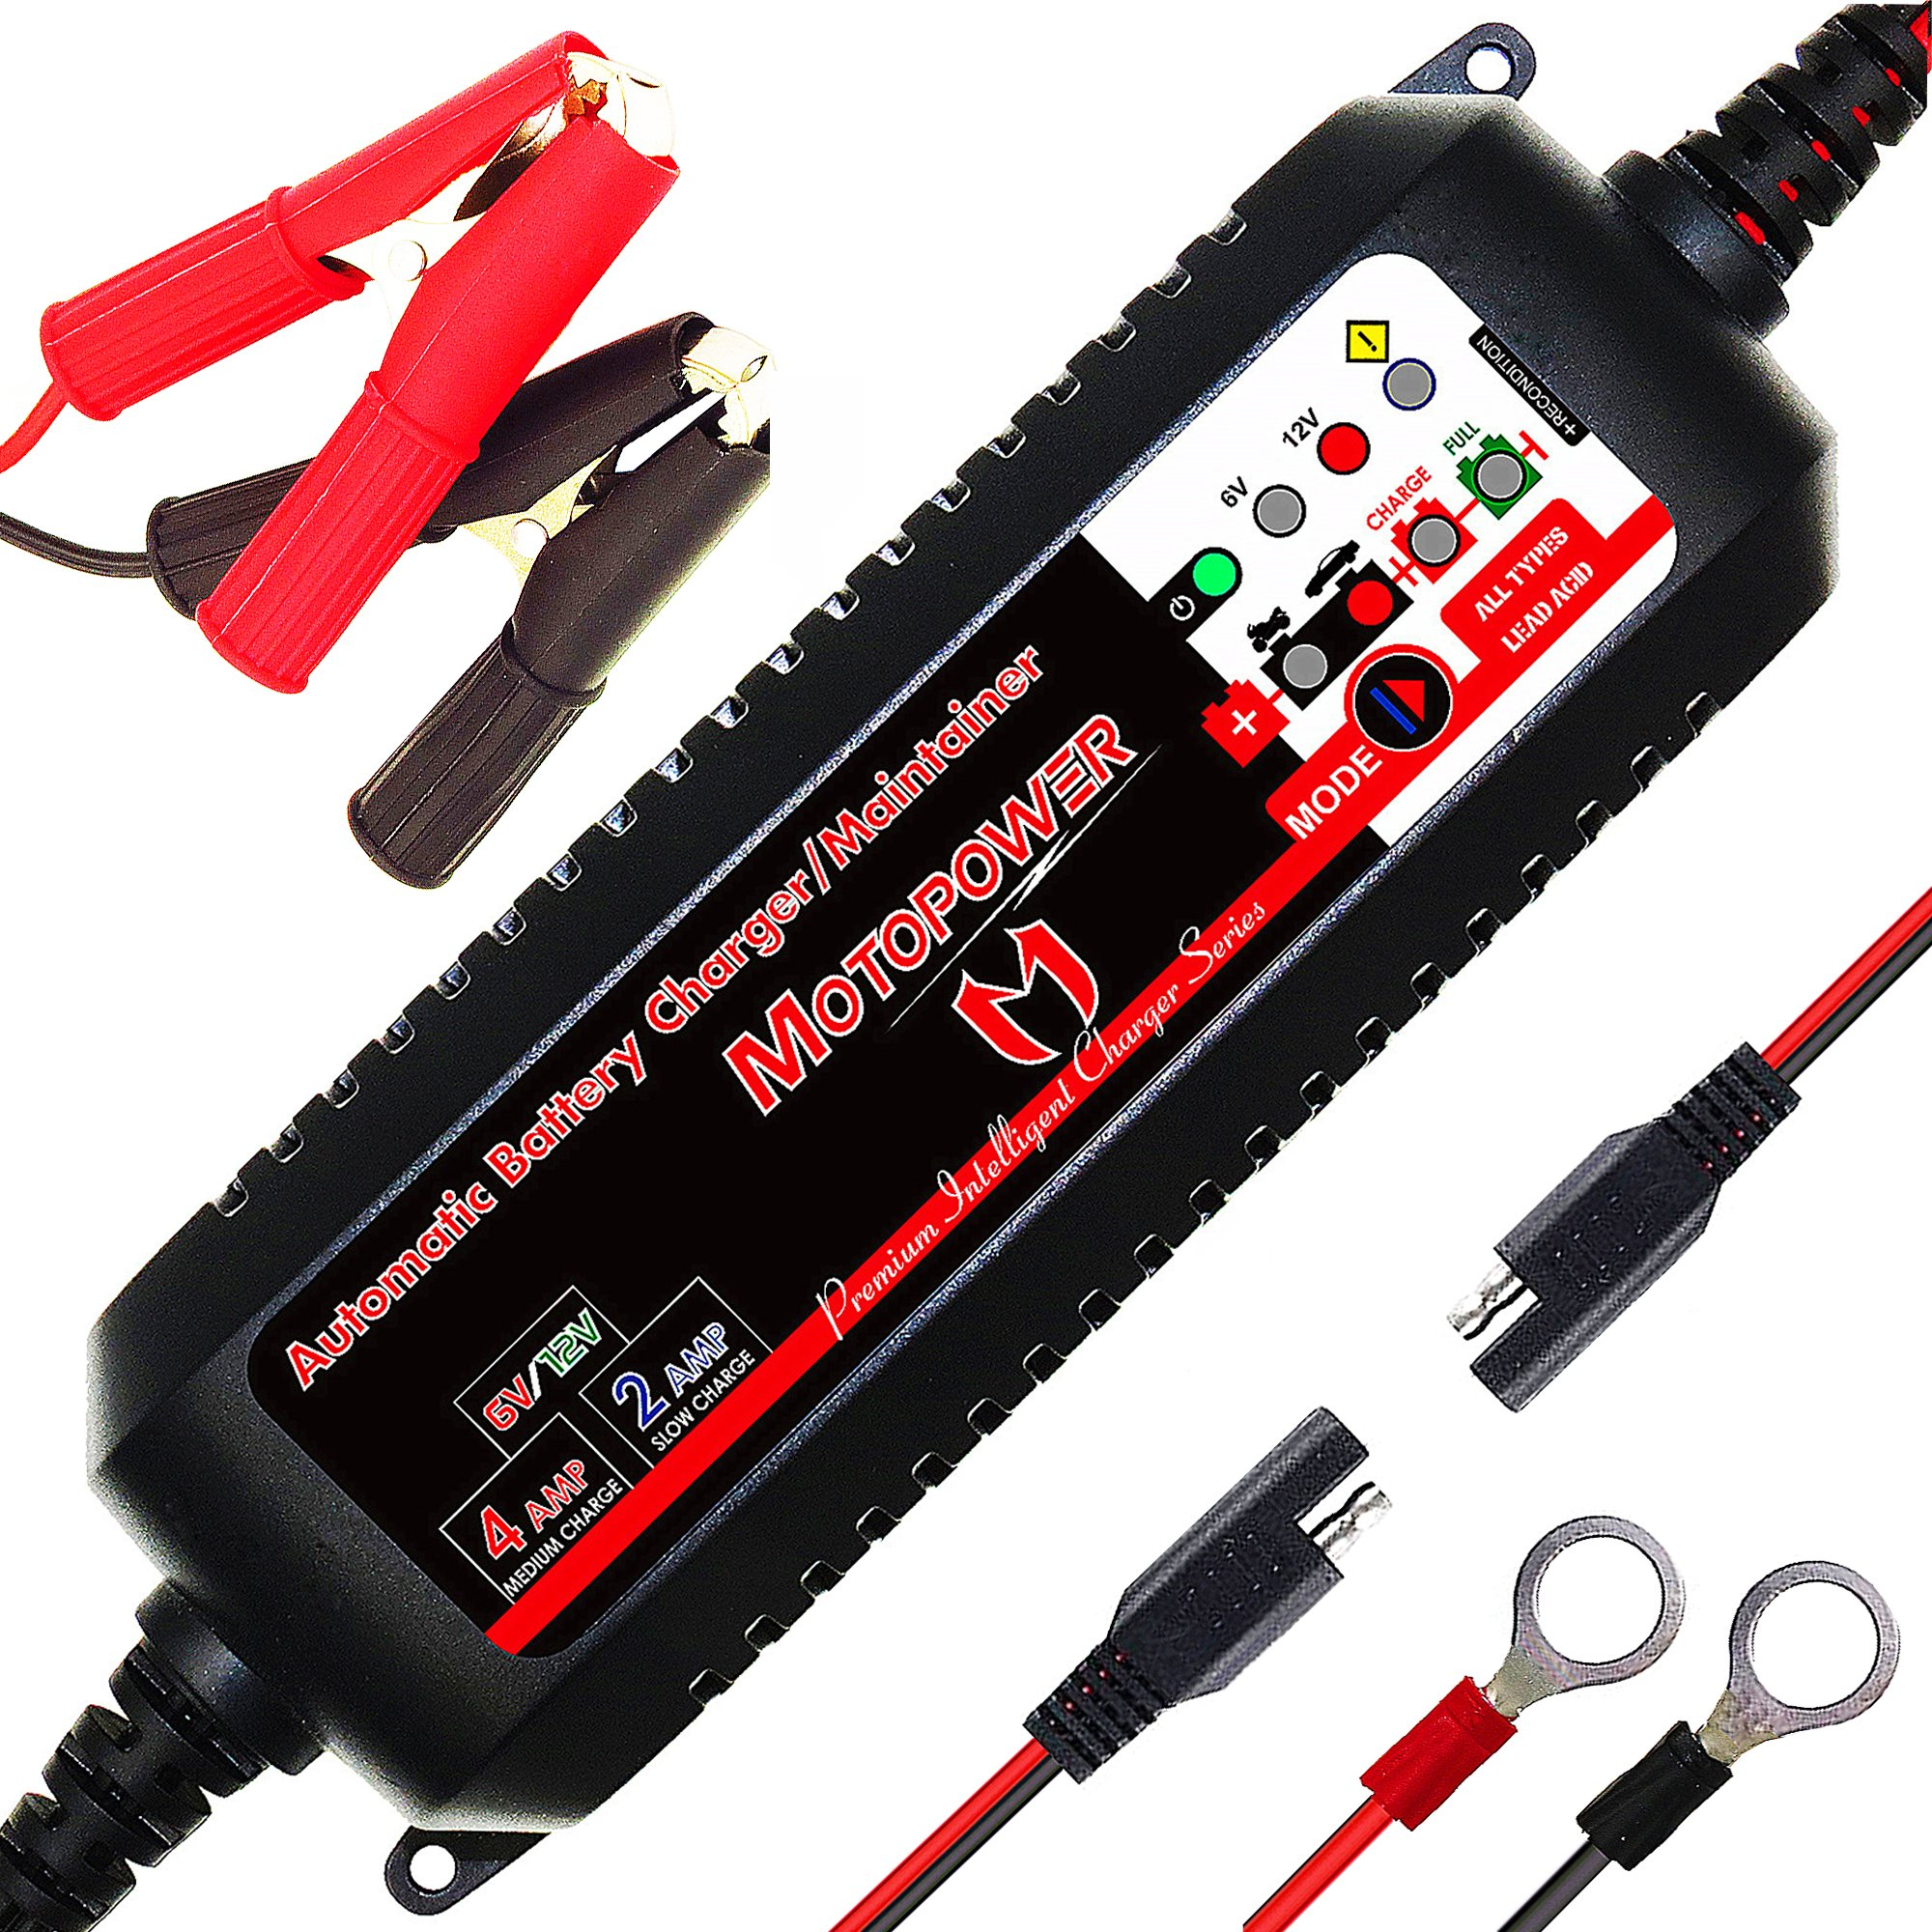 MOTOPOWER MP00207 6V / 12V 4AMP Fully Automatic Smart Battery Charger Maintainer Rescure for All Types Lead Acid Batteries of Car, Motorcycle, Boat - Battery Recover Mode